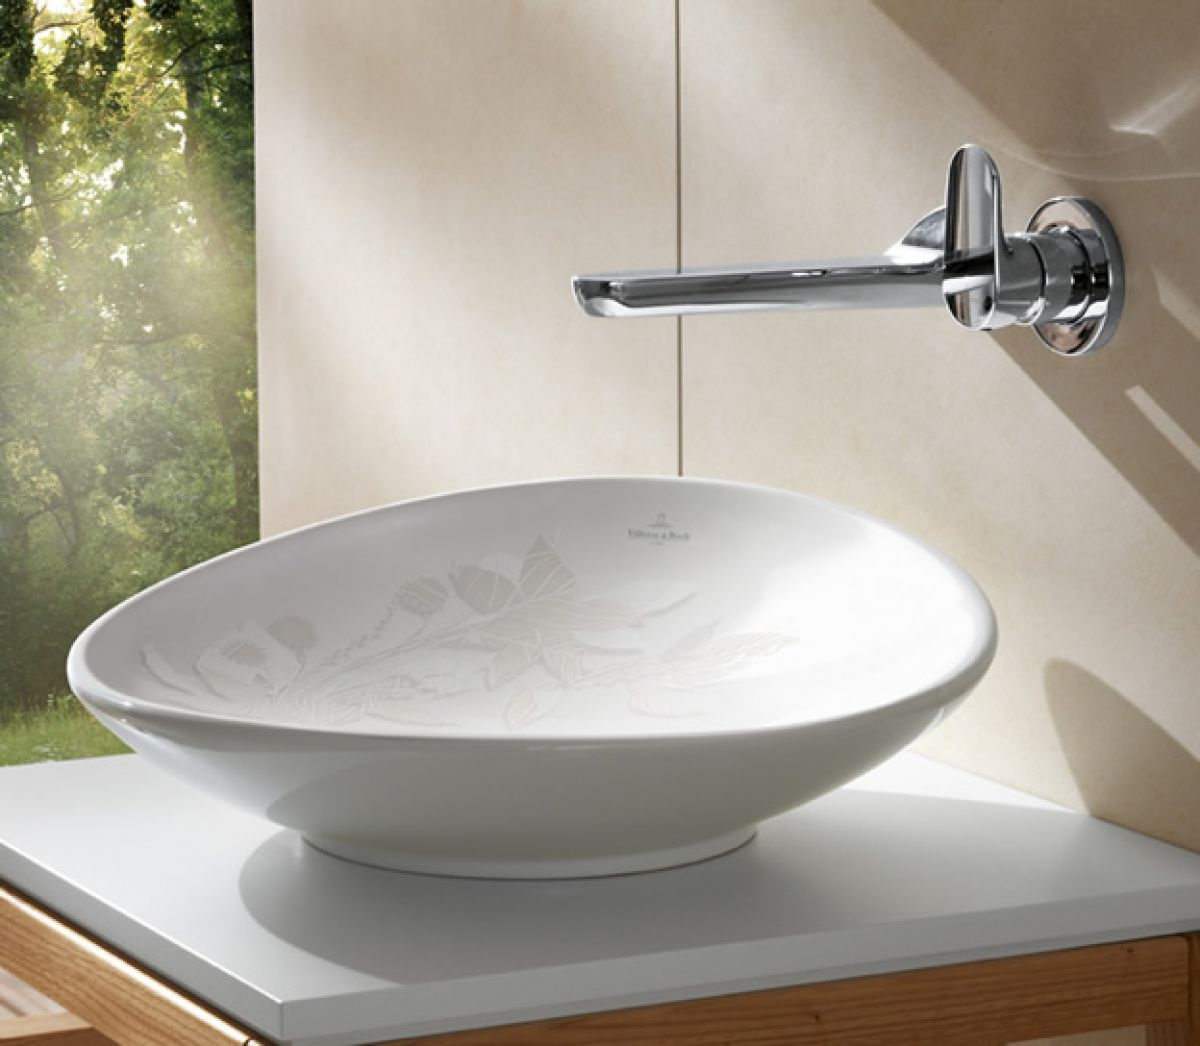 Villeroy and boch bathroom sink -  Villeroy Boch My Nature Surface Mounted Basin